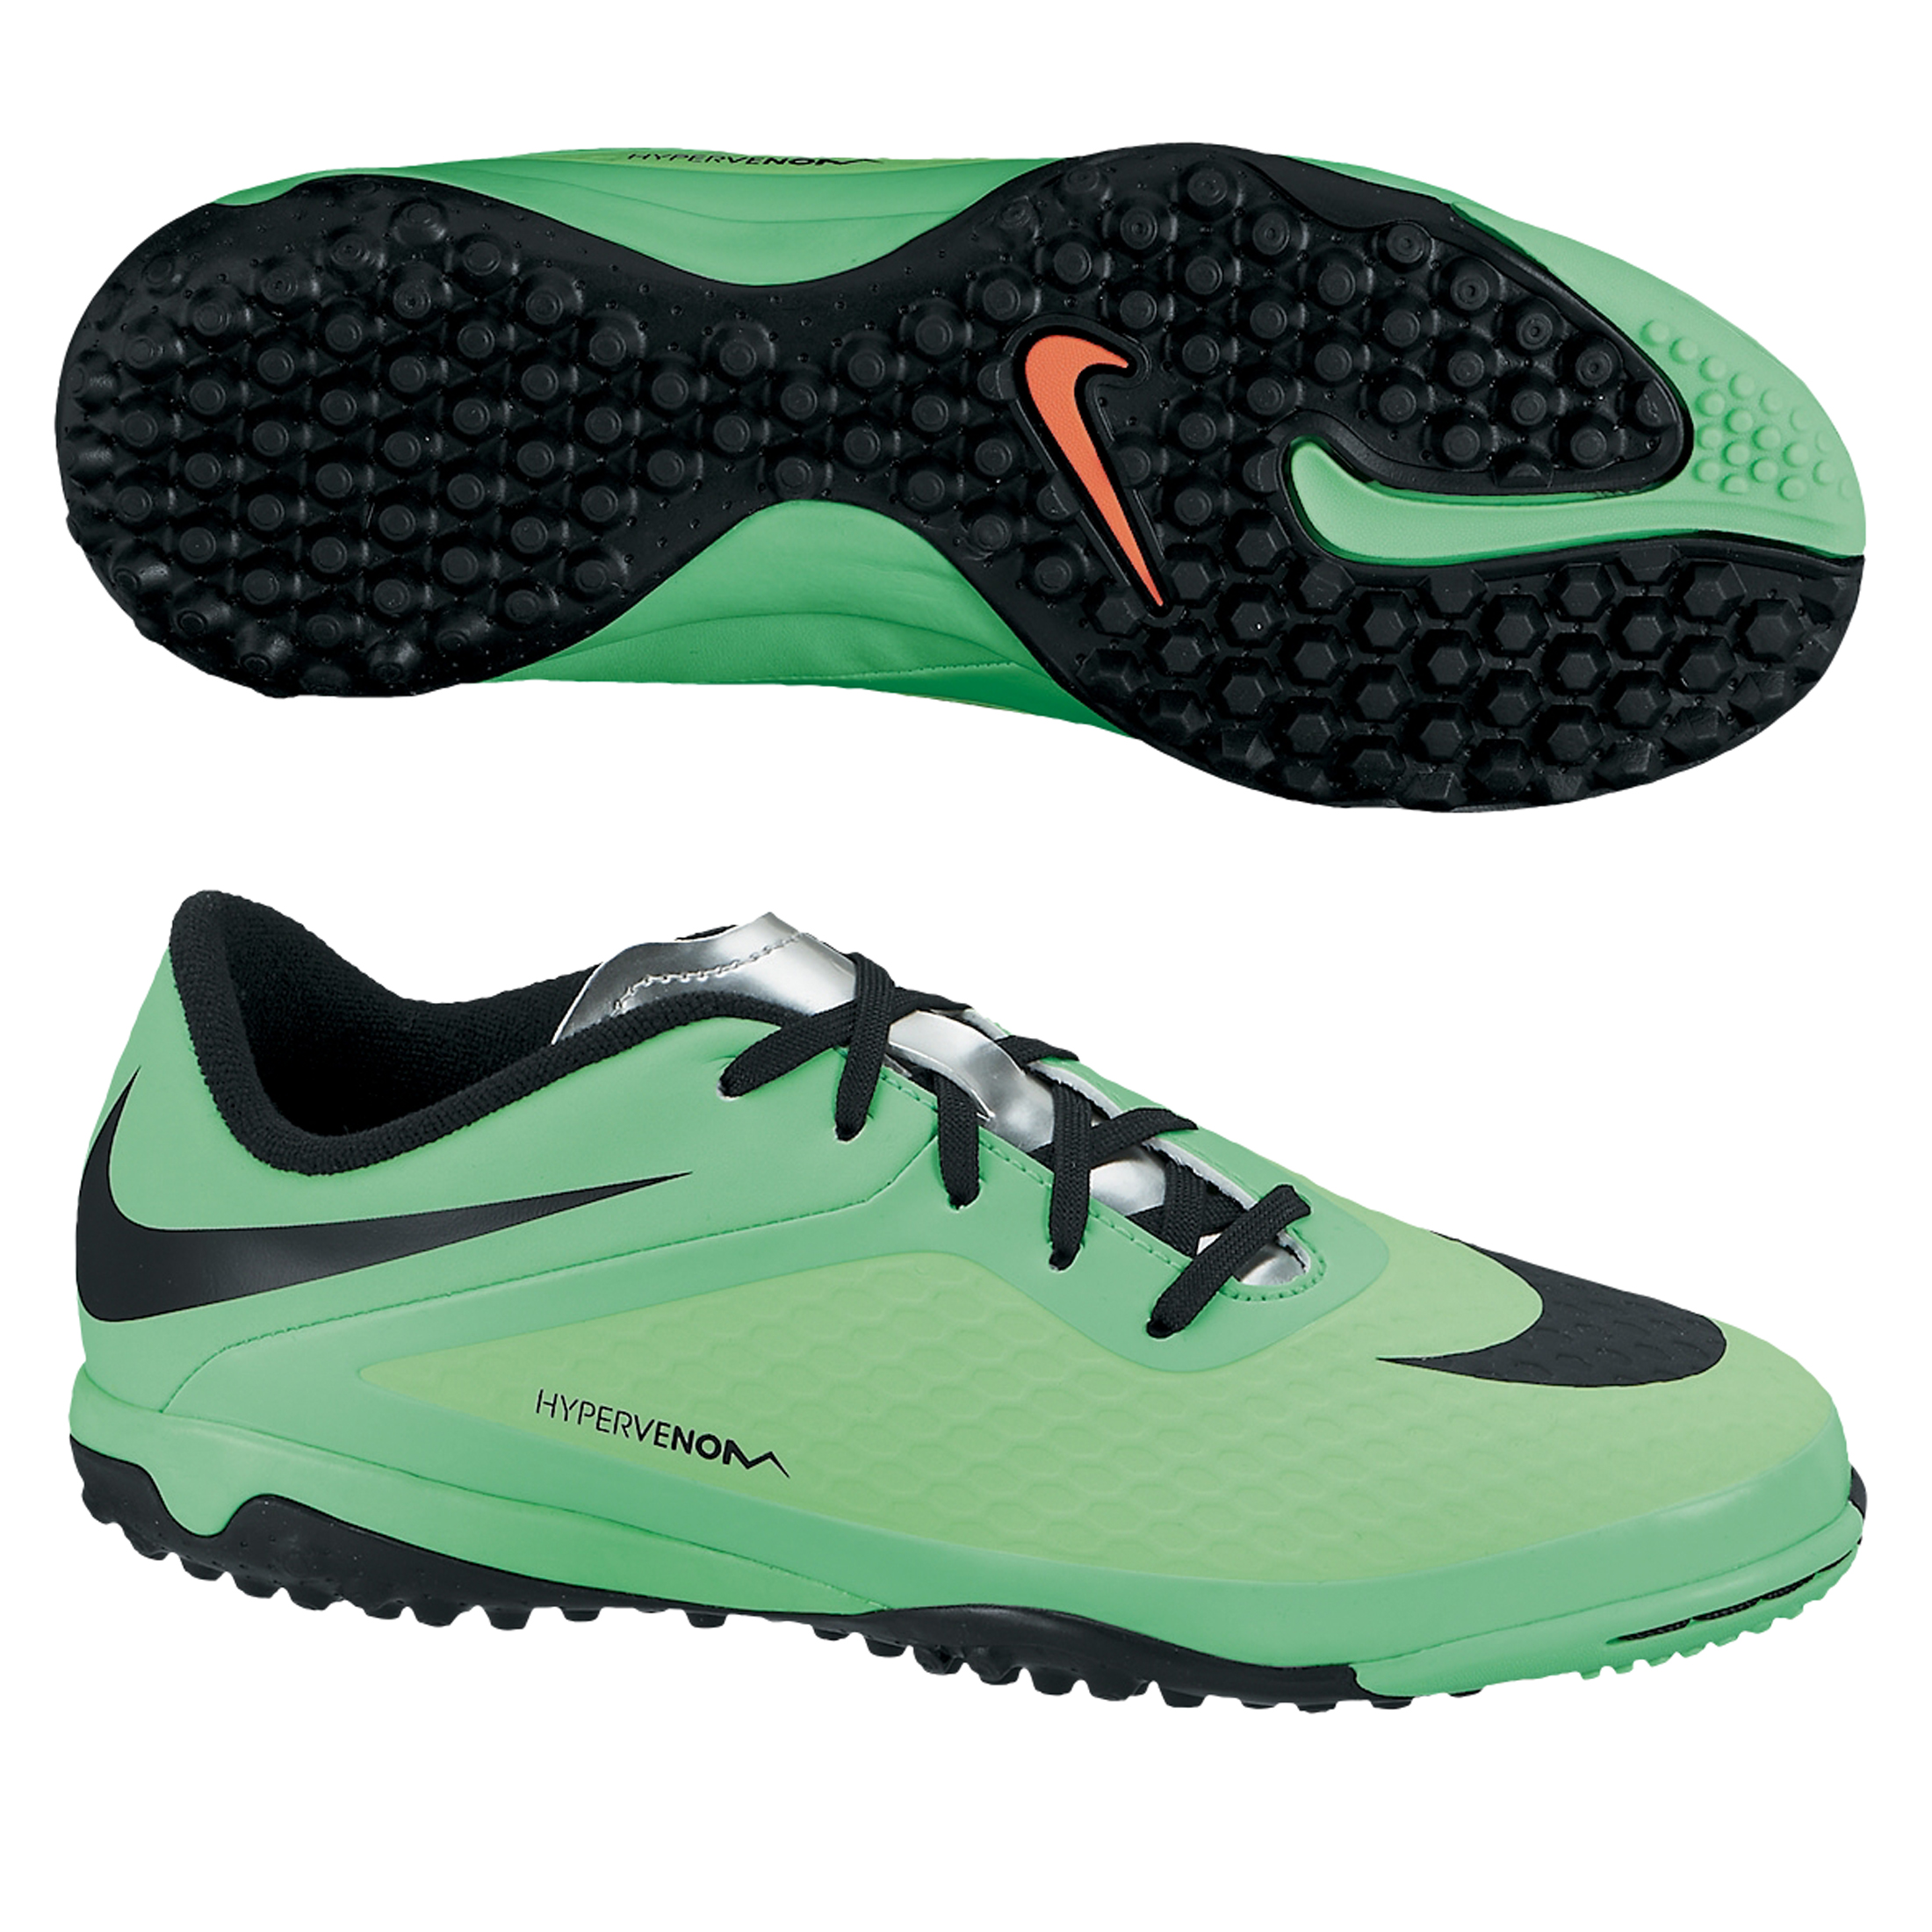 Nike Hypervenom Phelon Astroturf Trainers - Kids Green